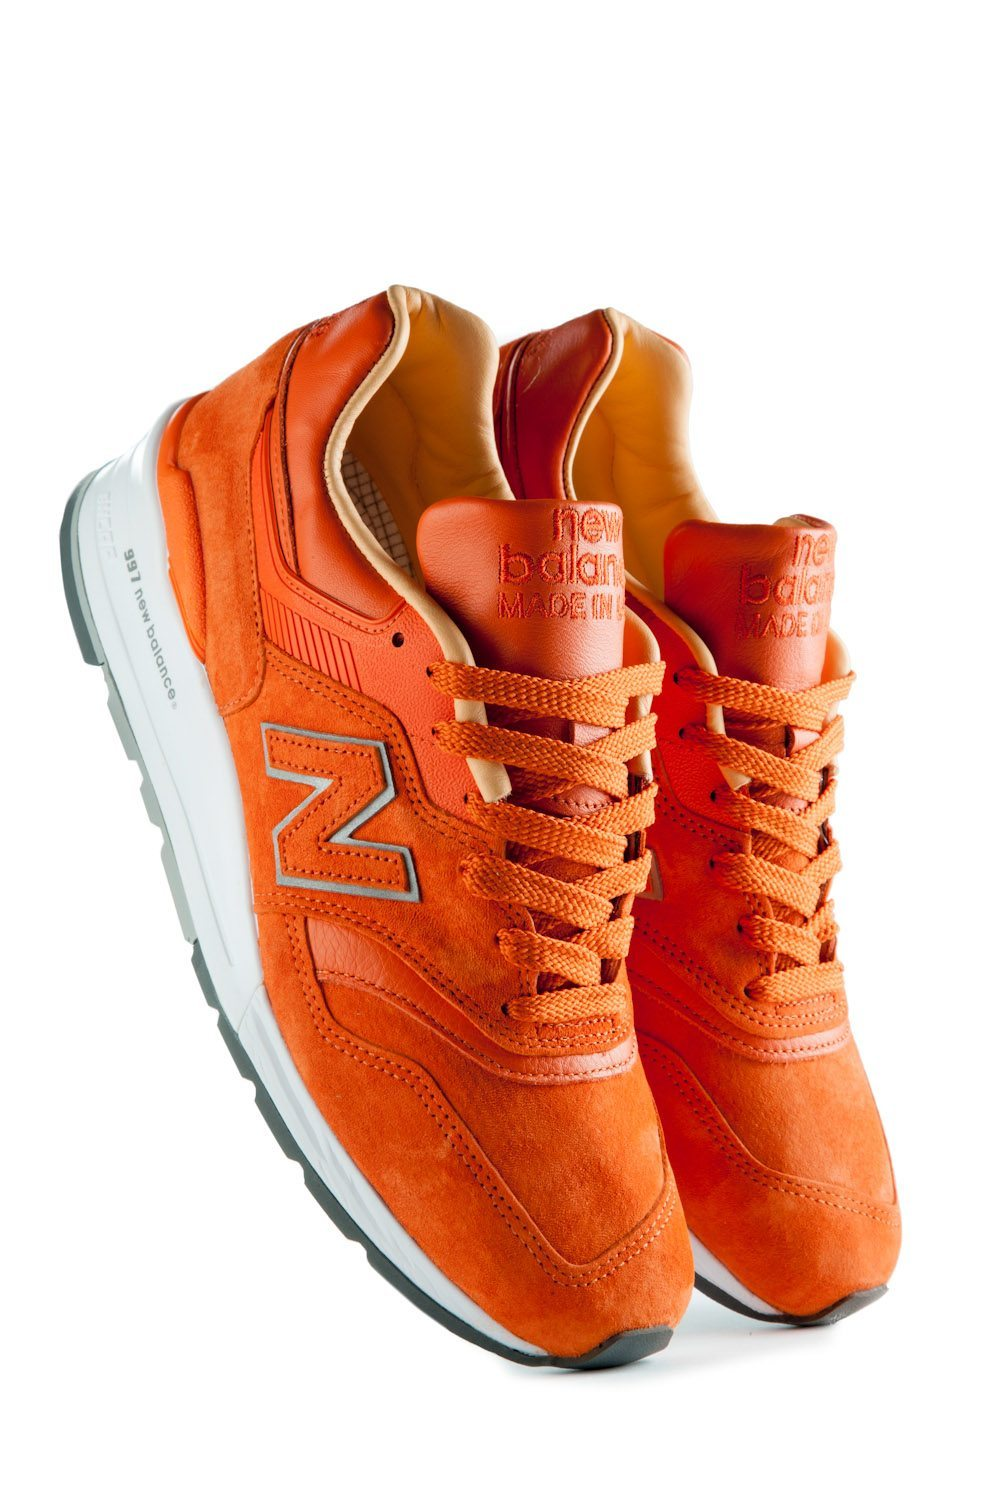 Concepts x New Balance 997 Luxury Goods 7